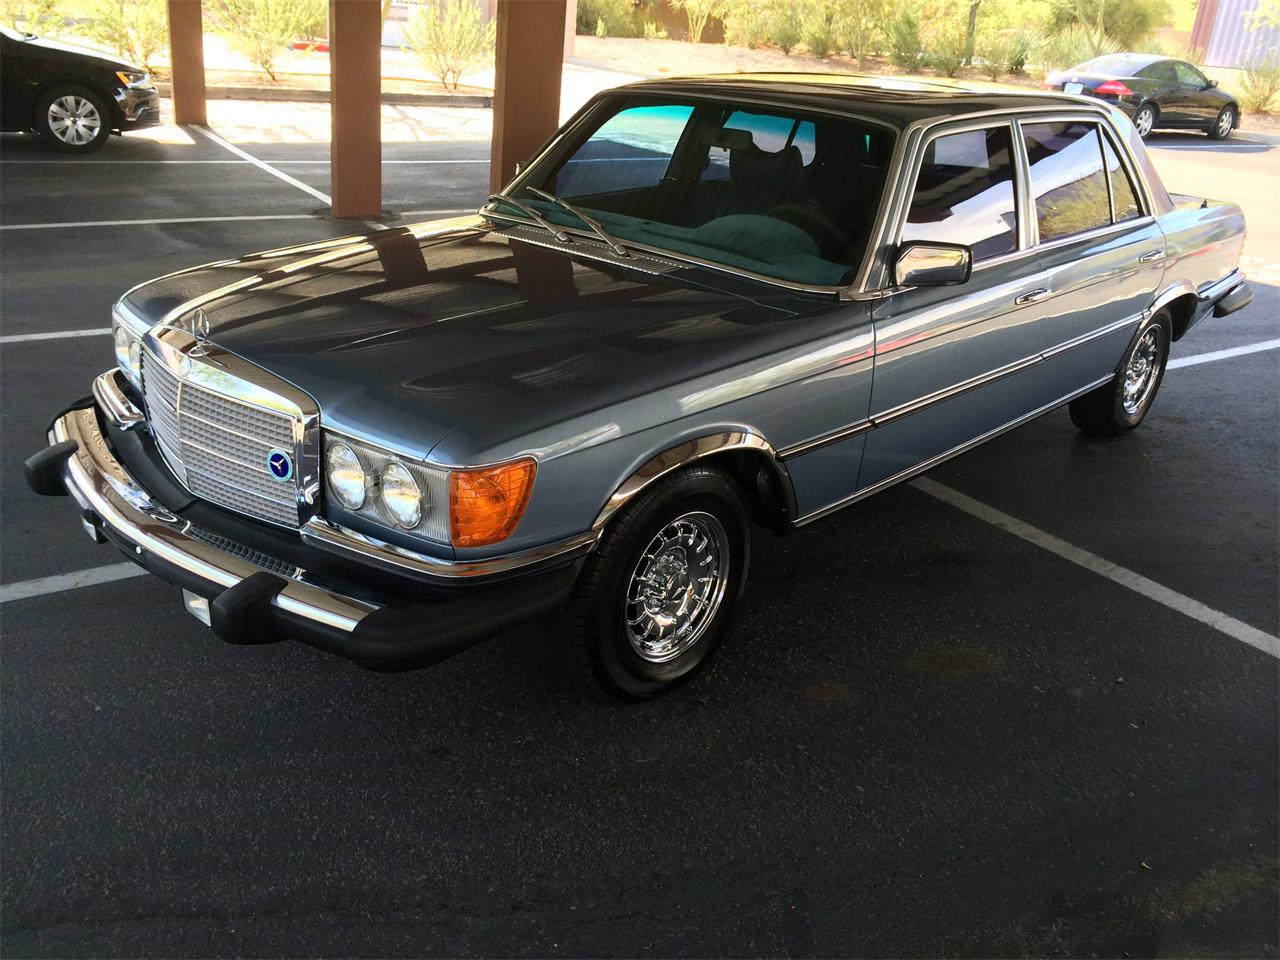 Large Picture of 1978 Mercedes-Benz 450SEL located in Arizona Auction Vehicle Offered by Russo and Steele - MOEN